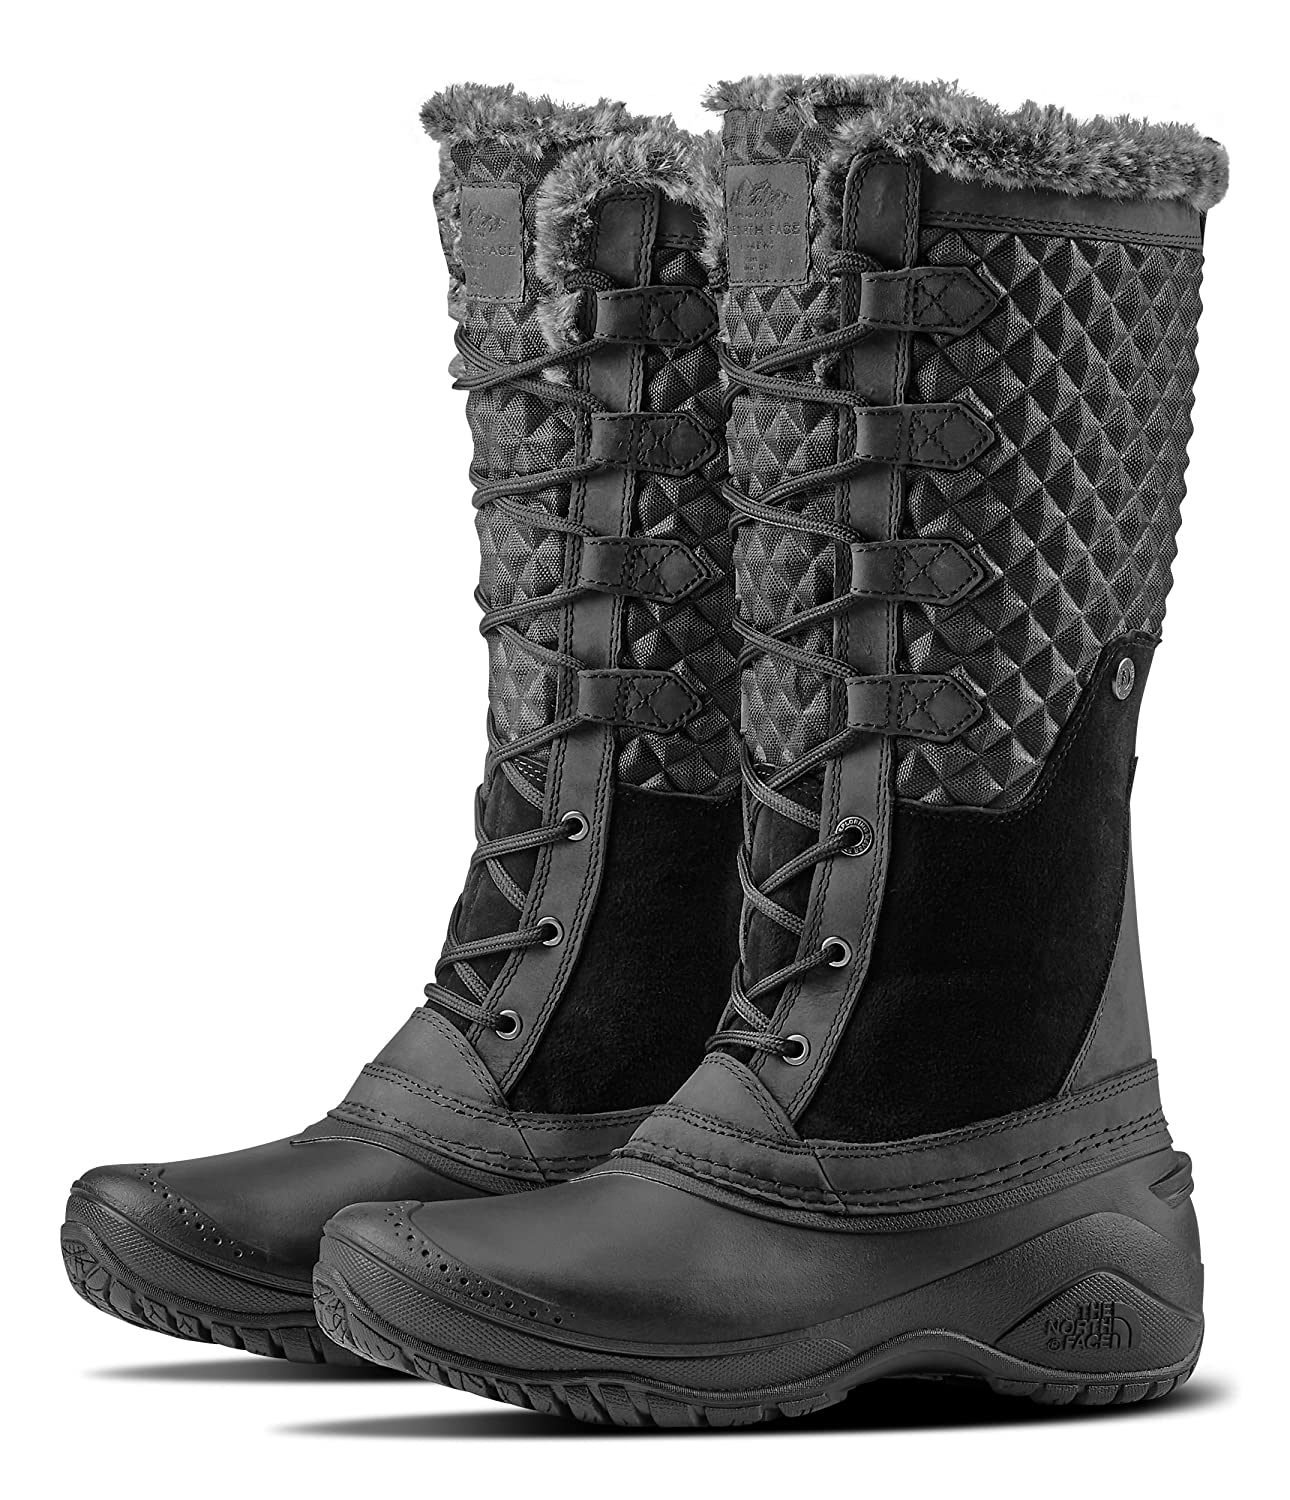 The III North Face Womens Shellista III The Tall B01NCNGKS9 10.5 B US|Tnf Black & Tnf Black eb7dcd